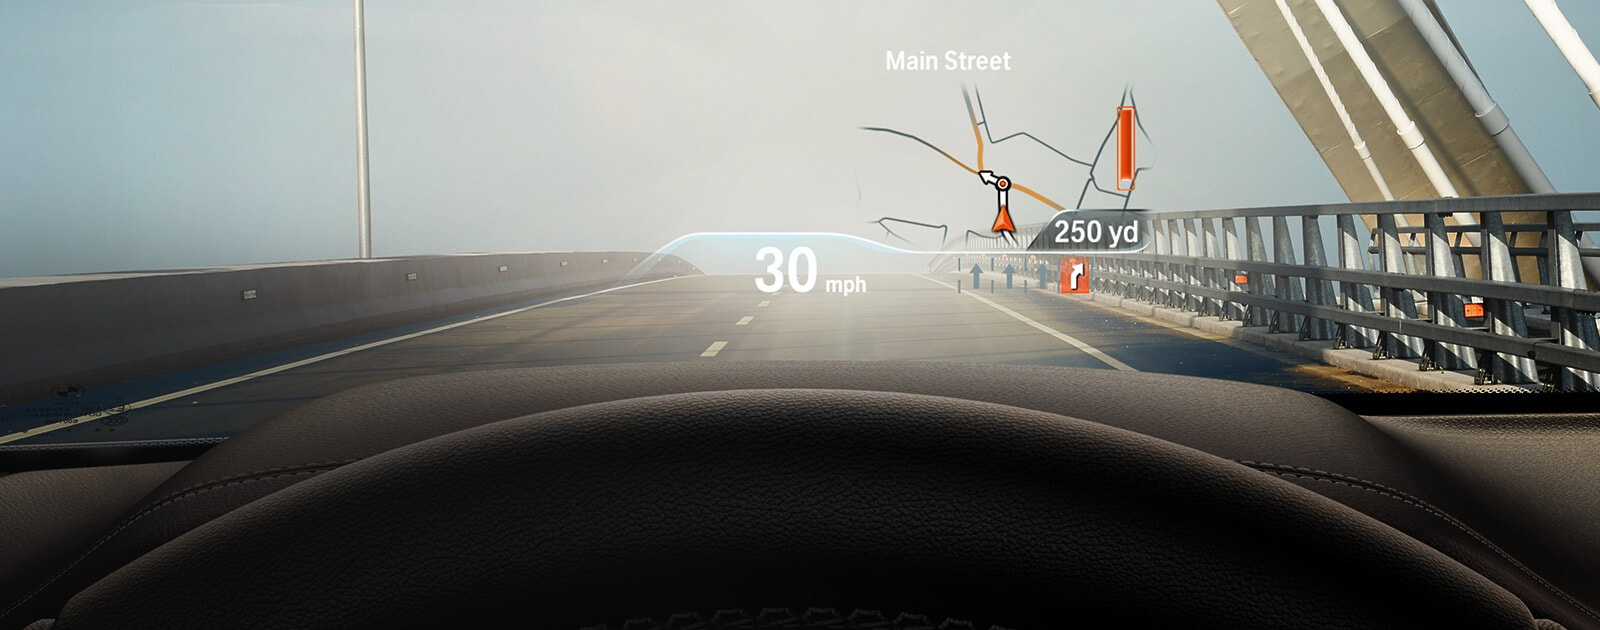 Driver's eye view of the Head-Up Display projecting speed and navigation information over the road ahead